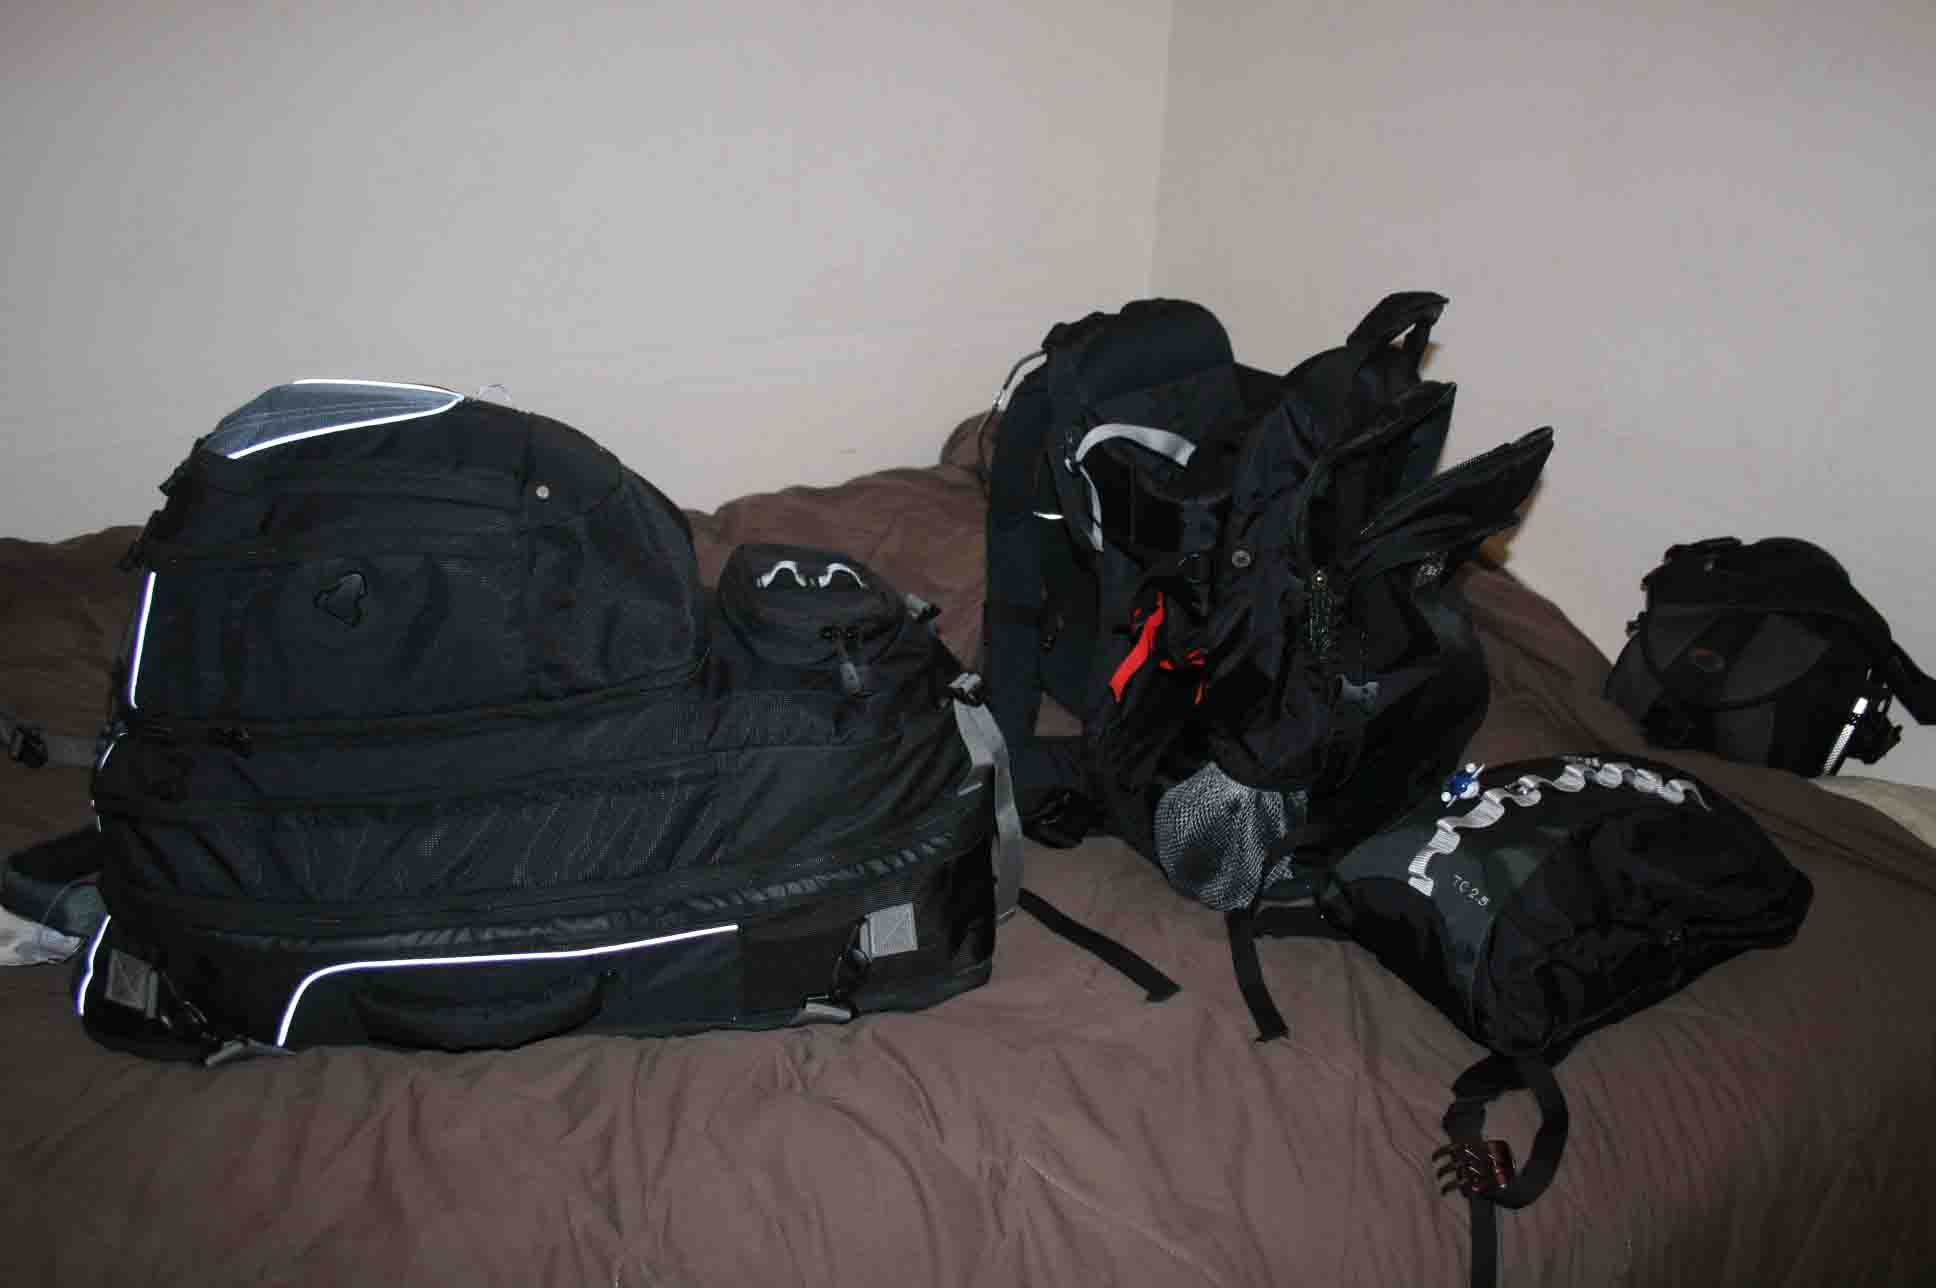 All The Backpacks